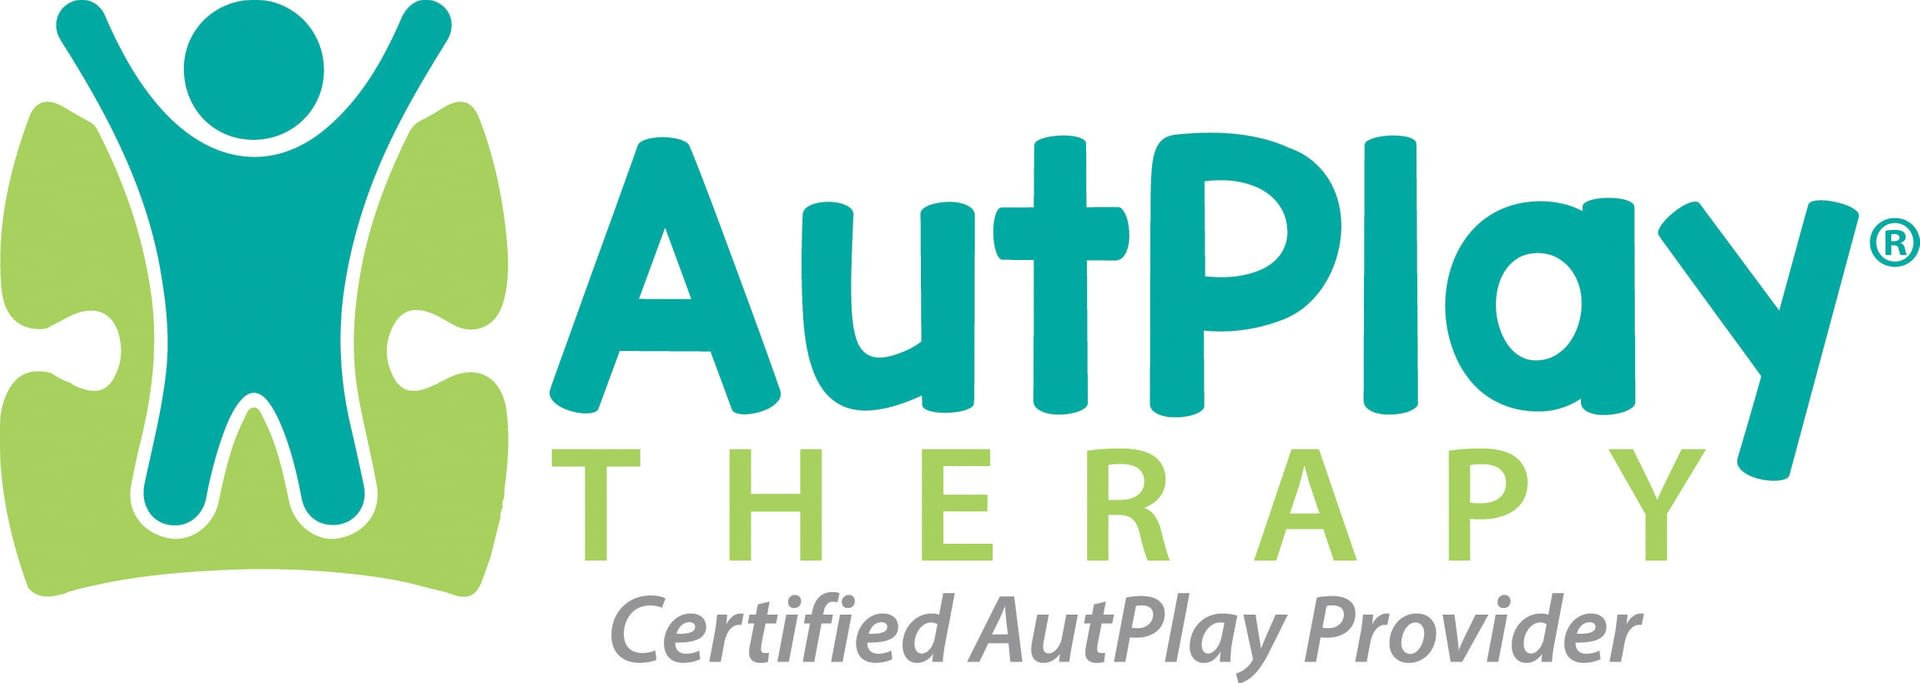 AutPlay Therapy Certified Provider